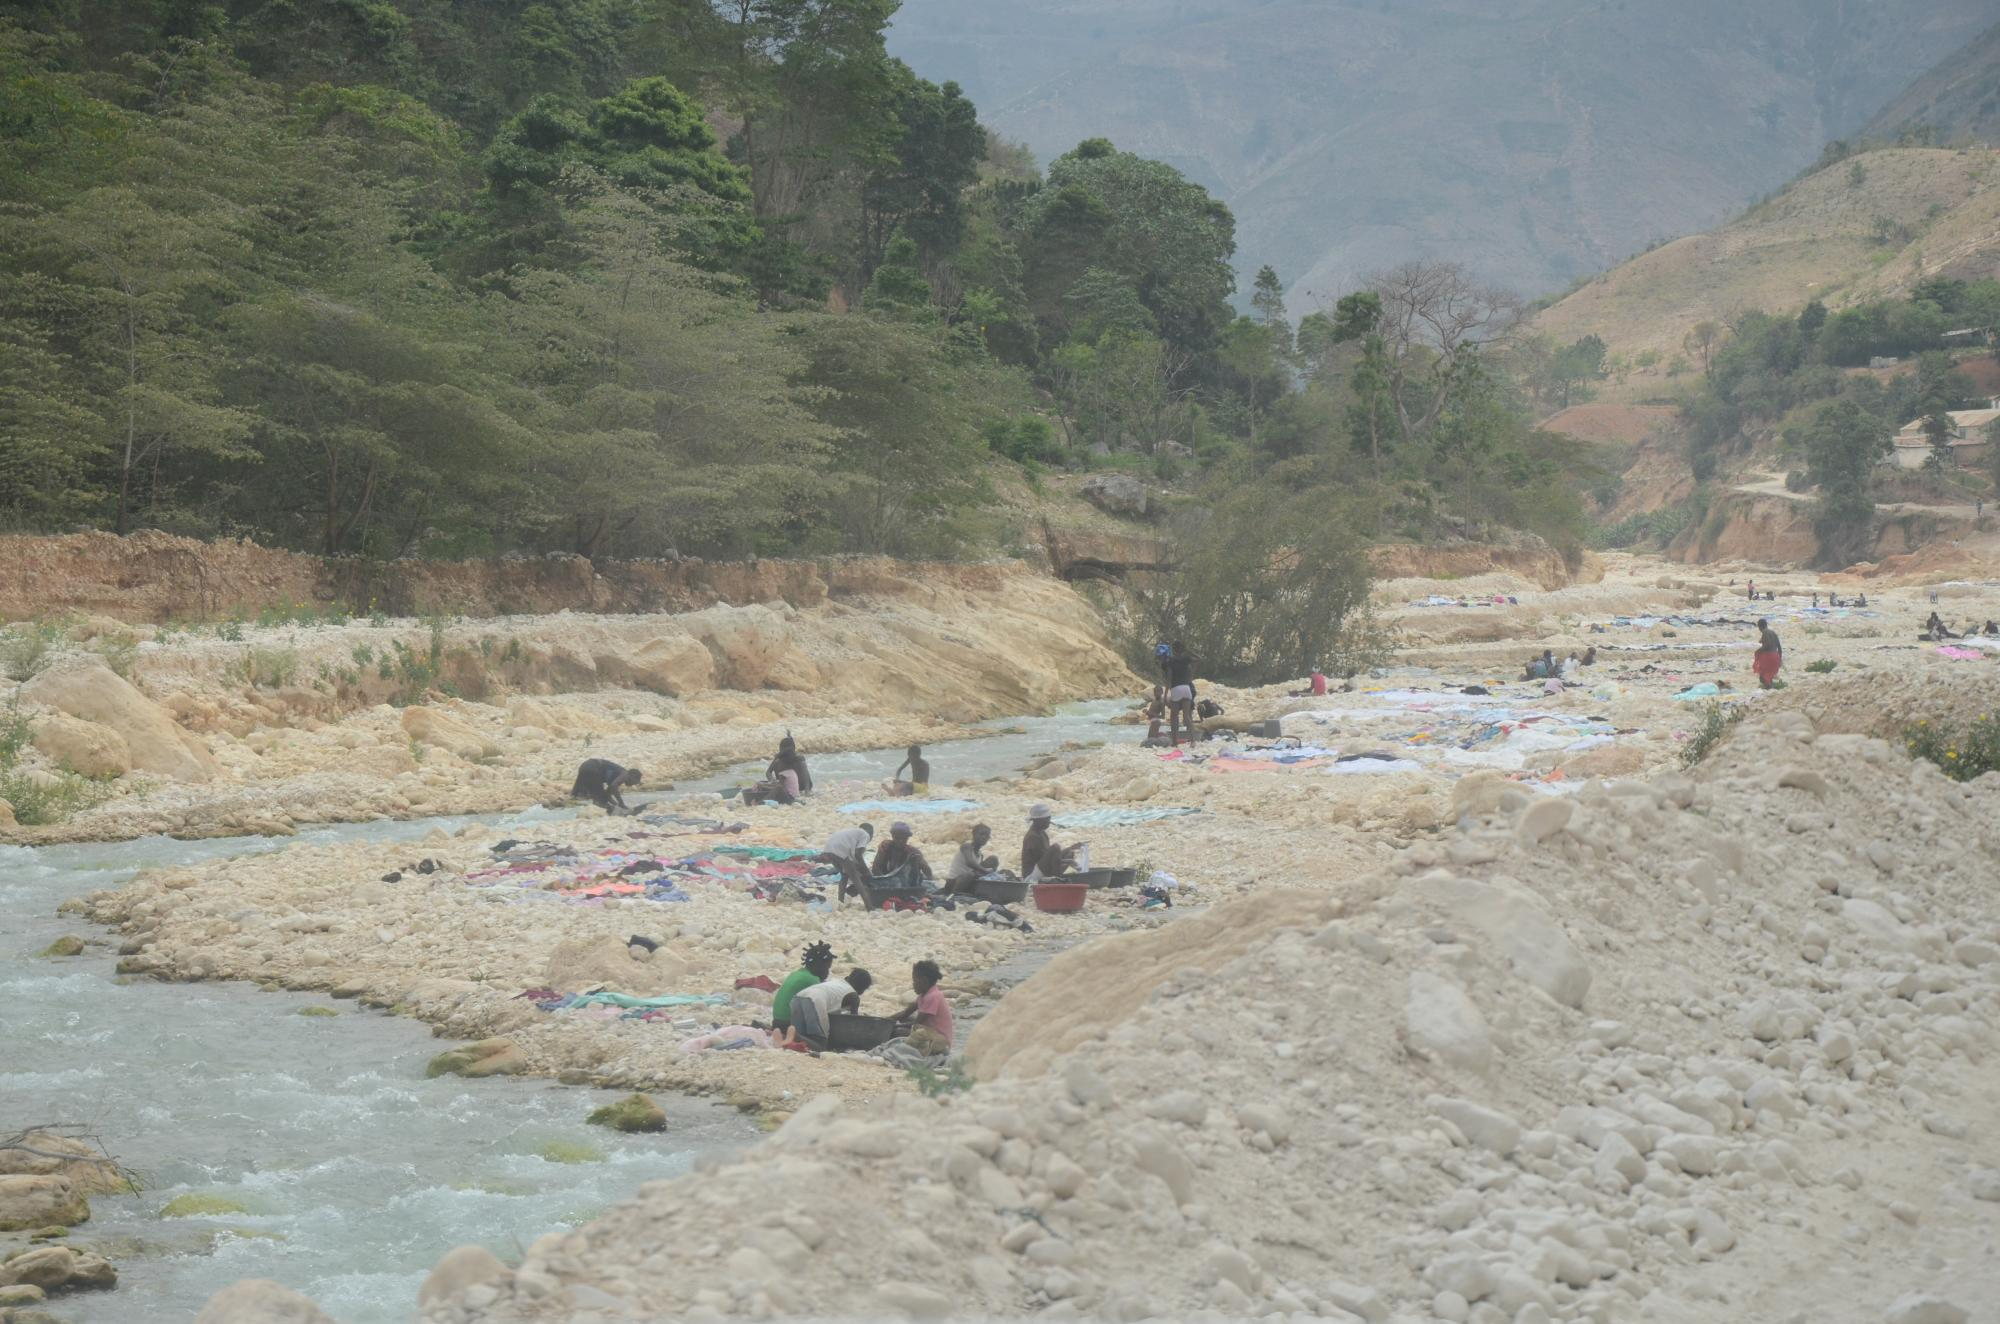 Haiti2013_Drive_in_river_laundry_cu_164.jpg